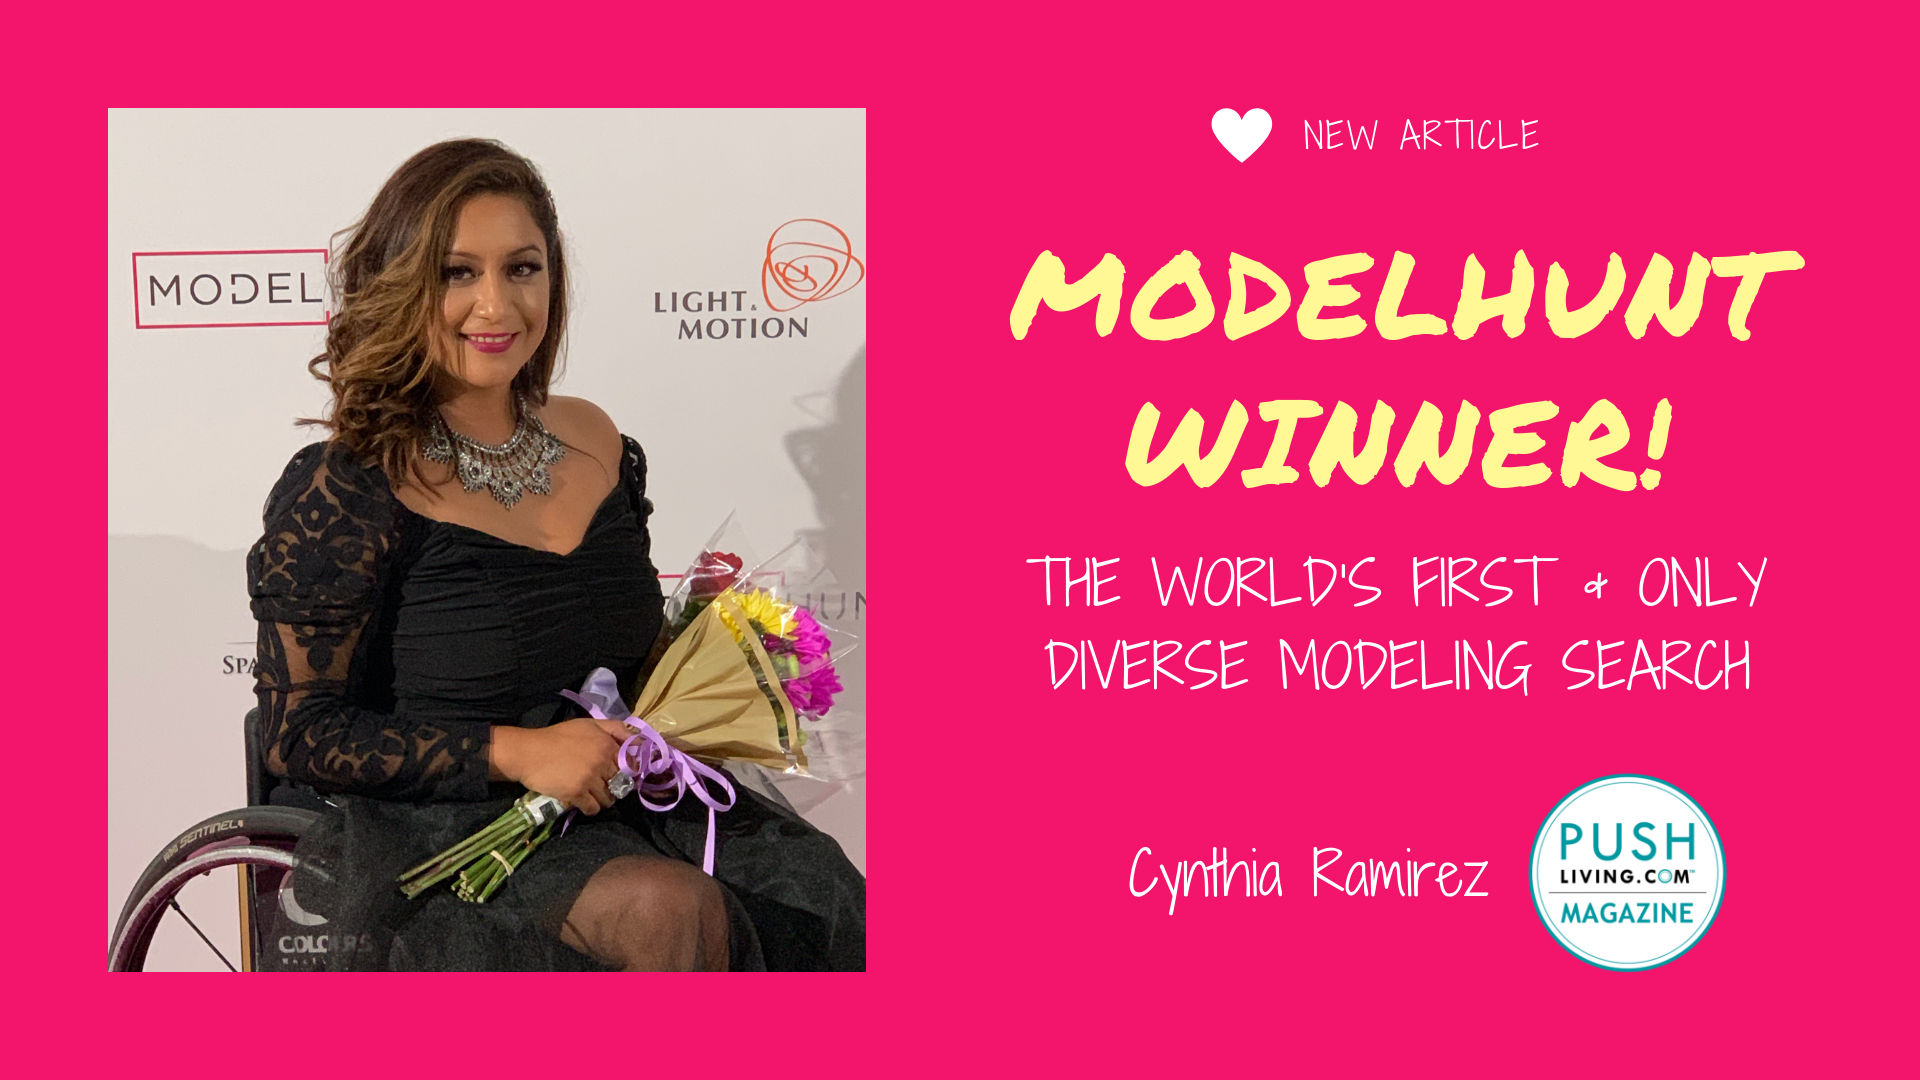 ModelHunt Winner Cover - ModelHunt Winner! The World's First and Only Diverse Modeling Search